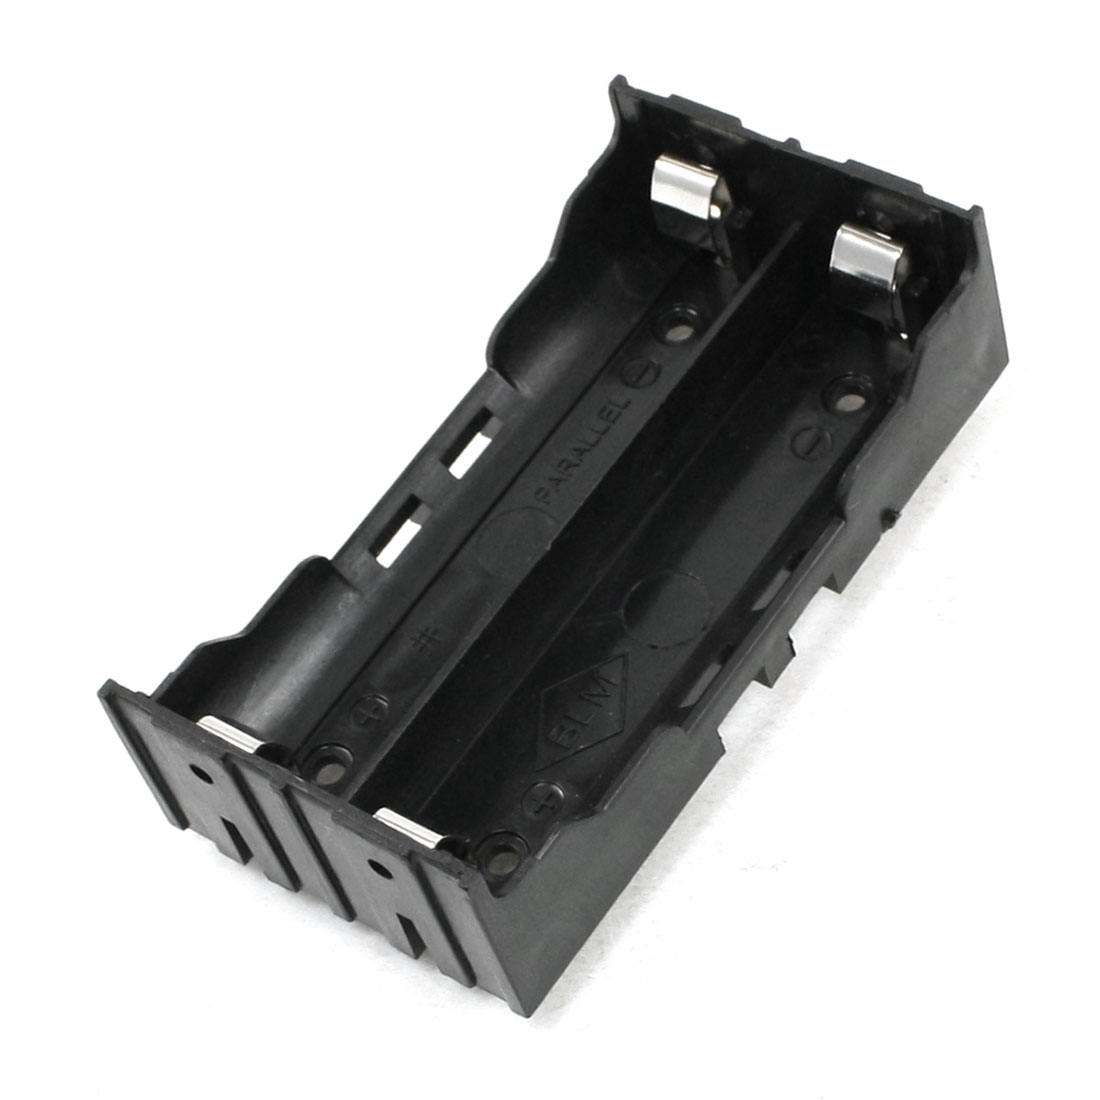 Black Battery Holder for 2 x 18650 Rechargeable Li-ion Batteries